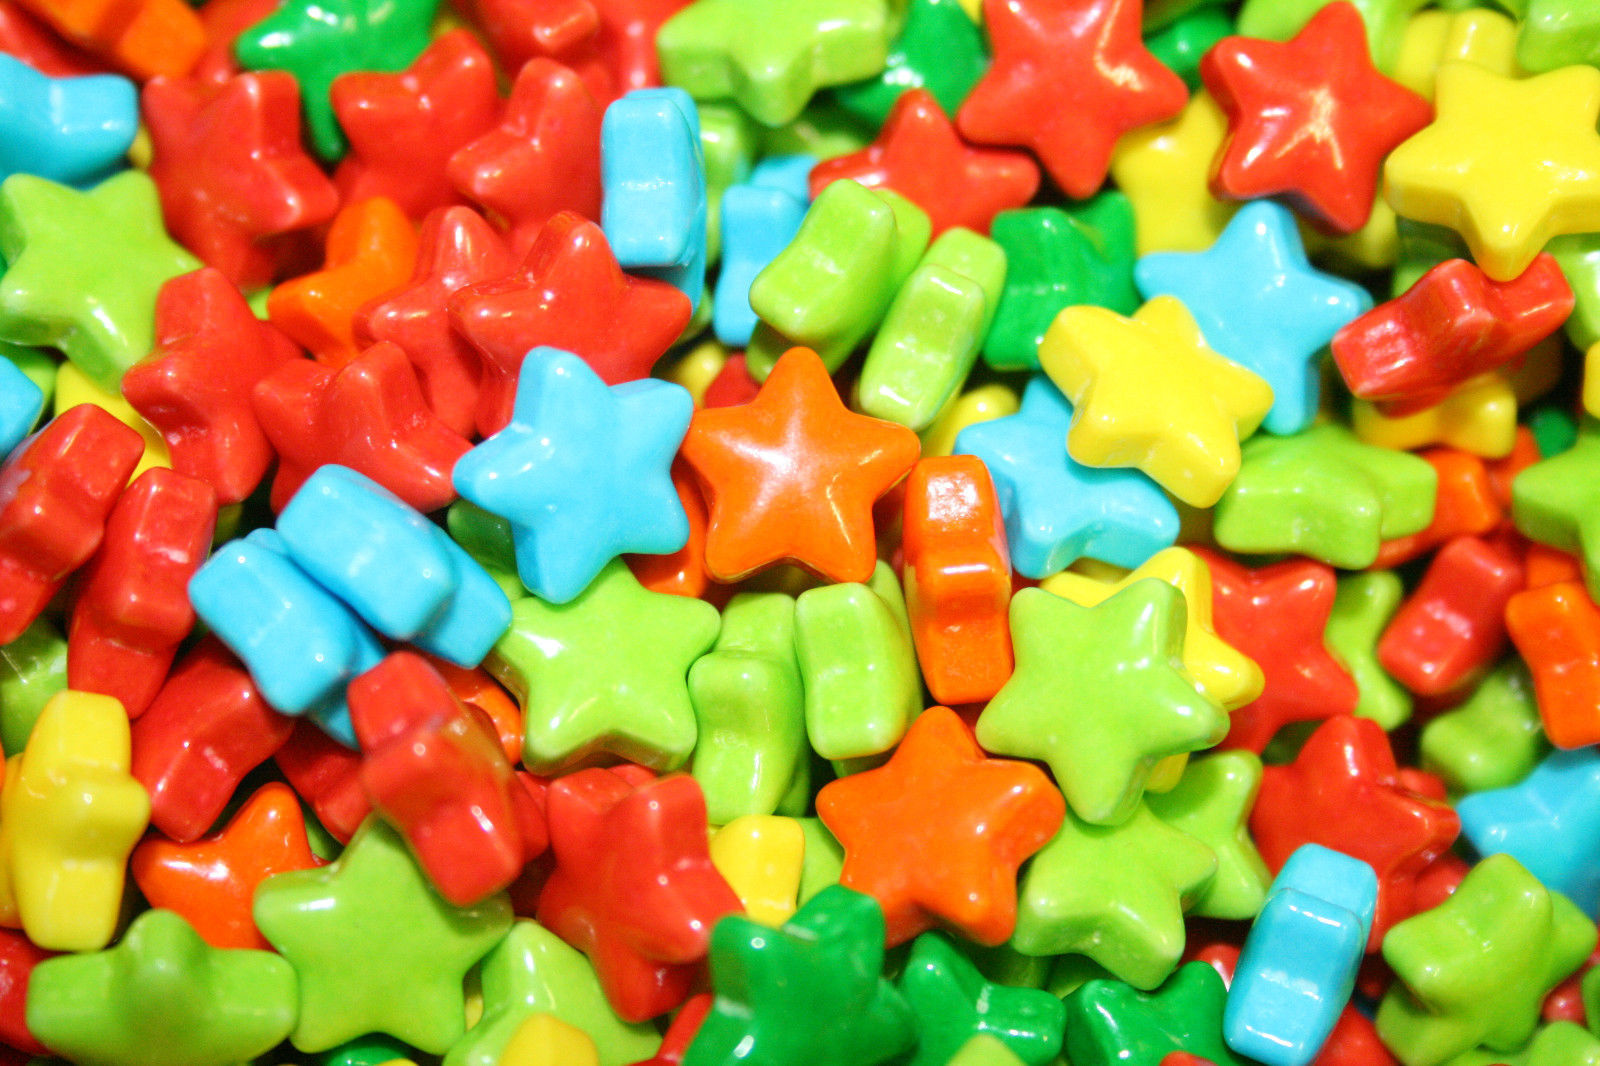 NEON STARS CANDY 825 COUNT, 1LB - $9.89